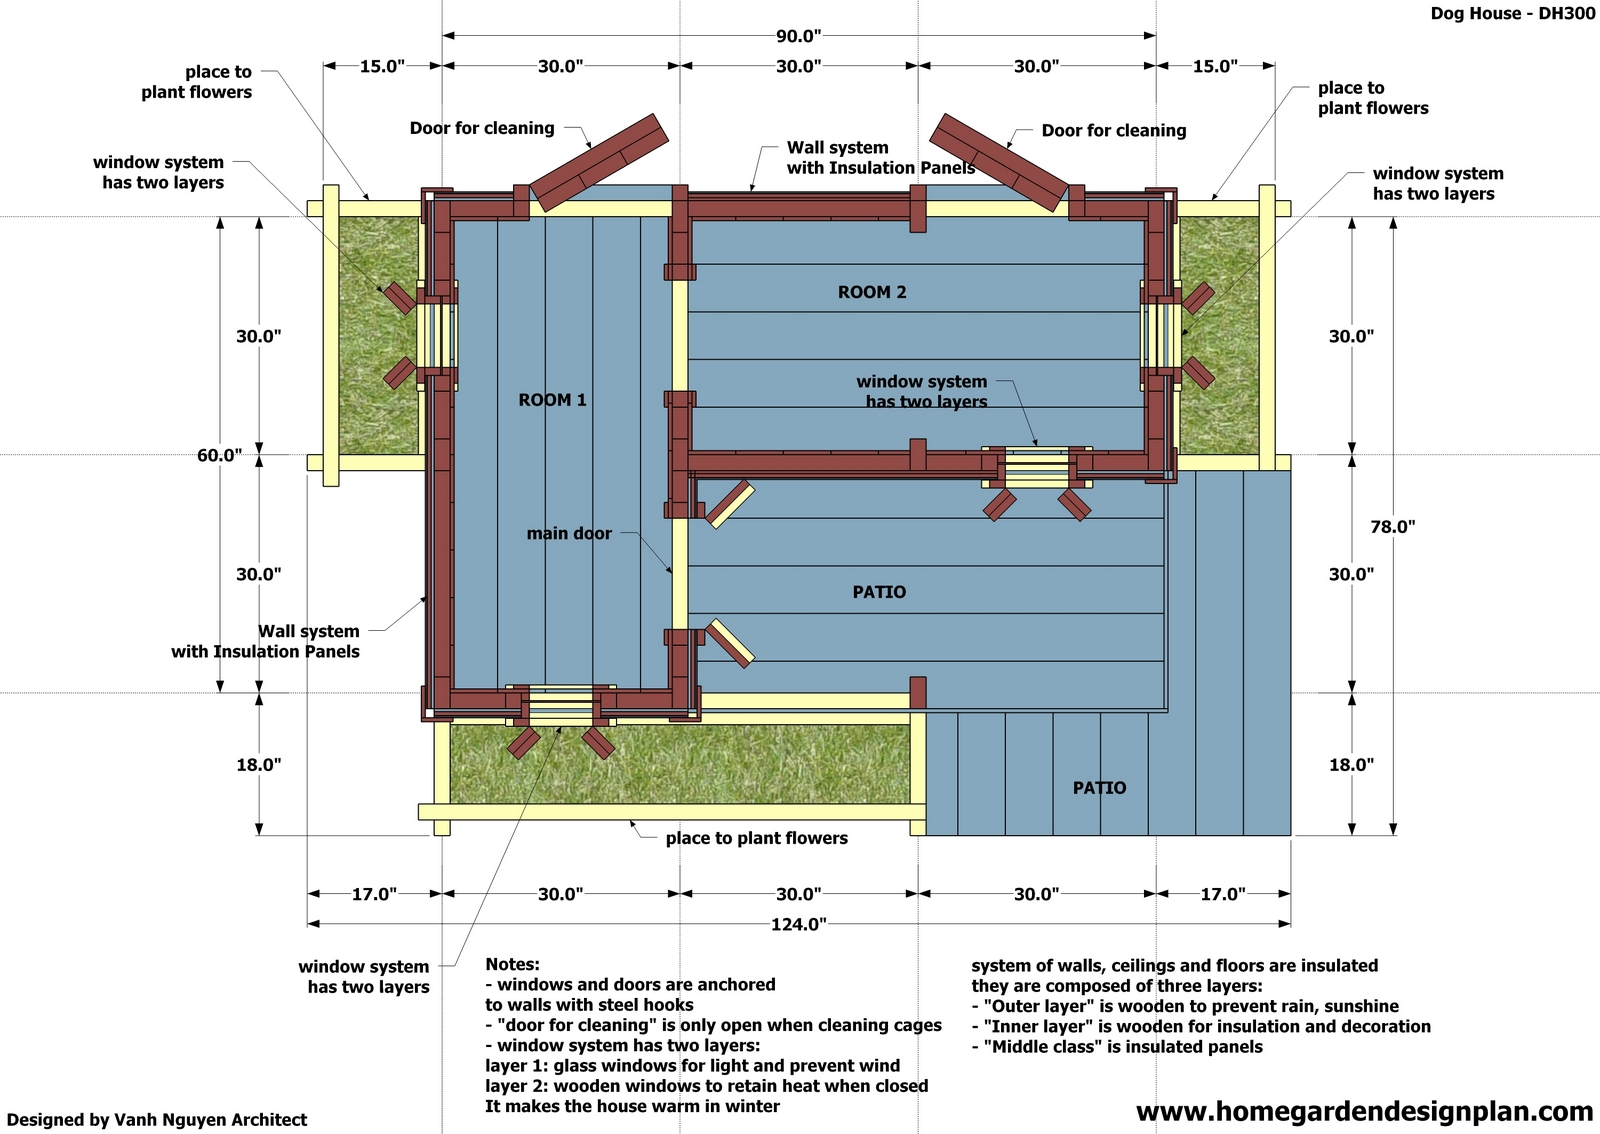 Free easy large dog house plans Lean to dog house plans